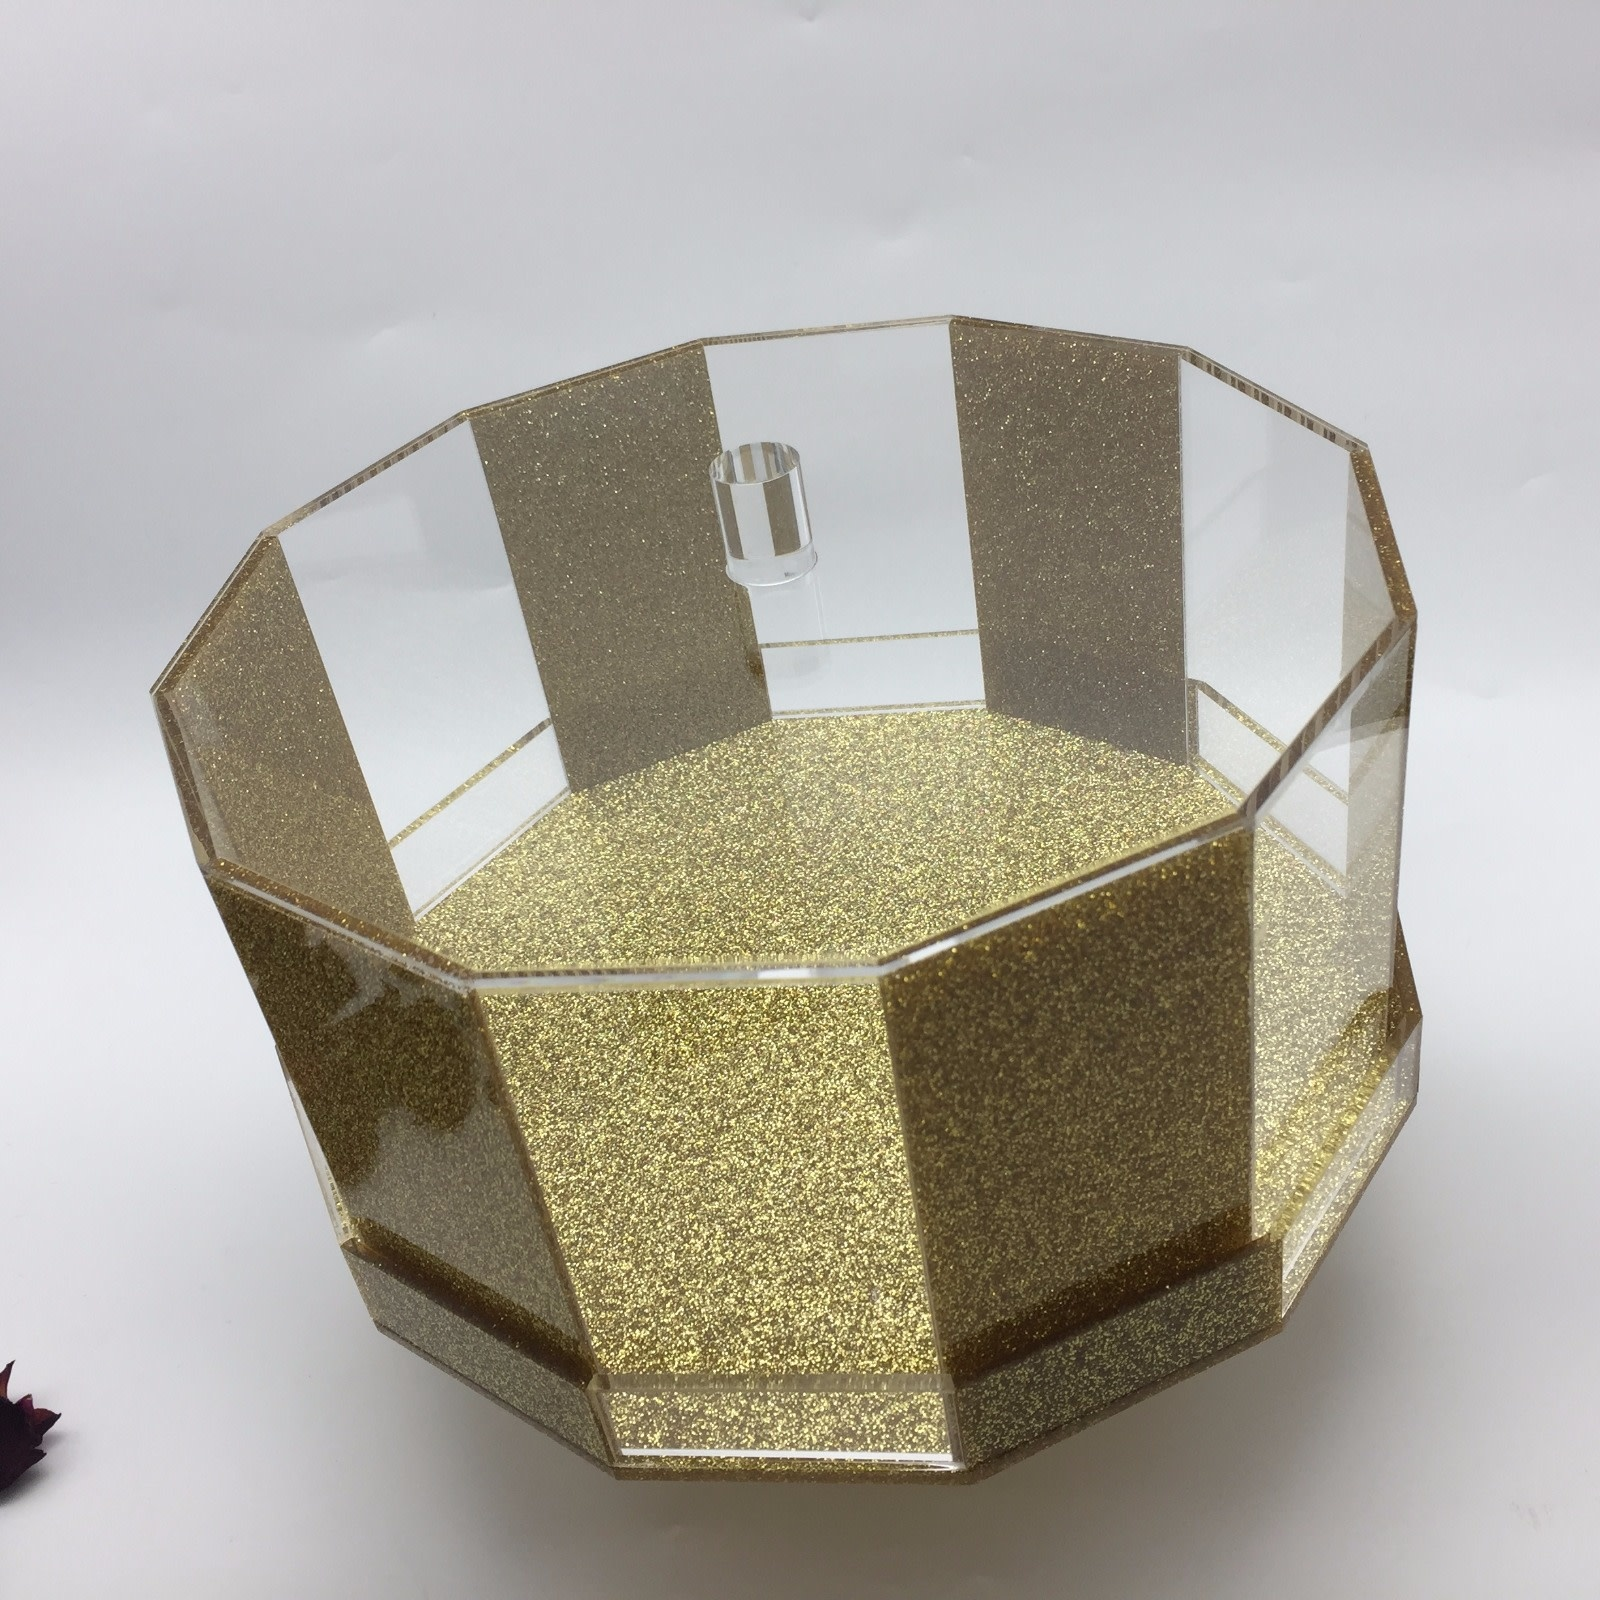 Hexagon Gold Glitter Cake Dome